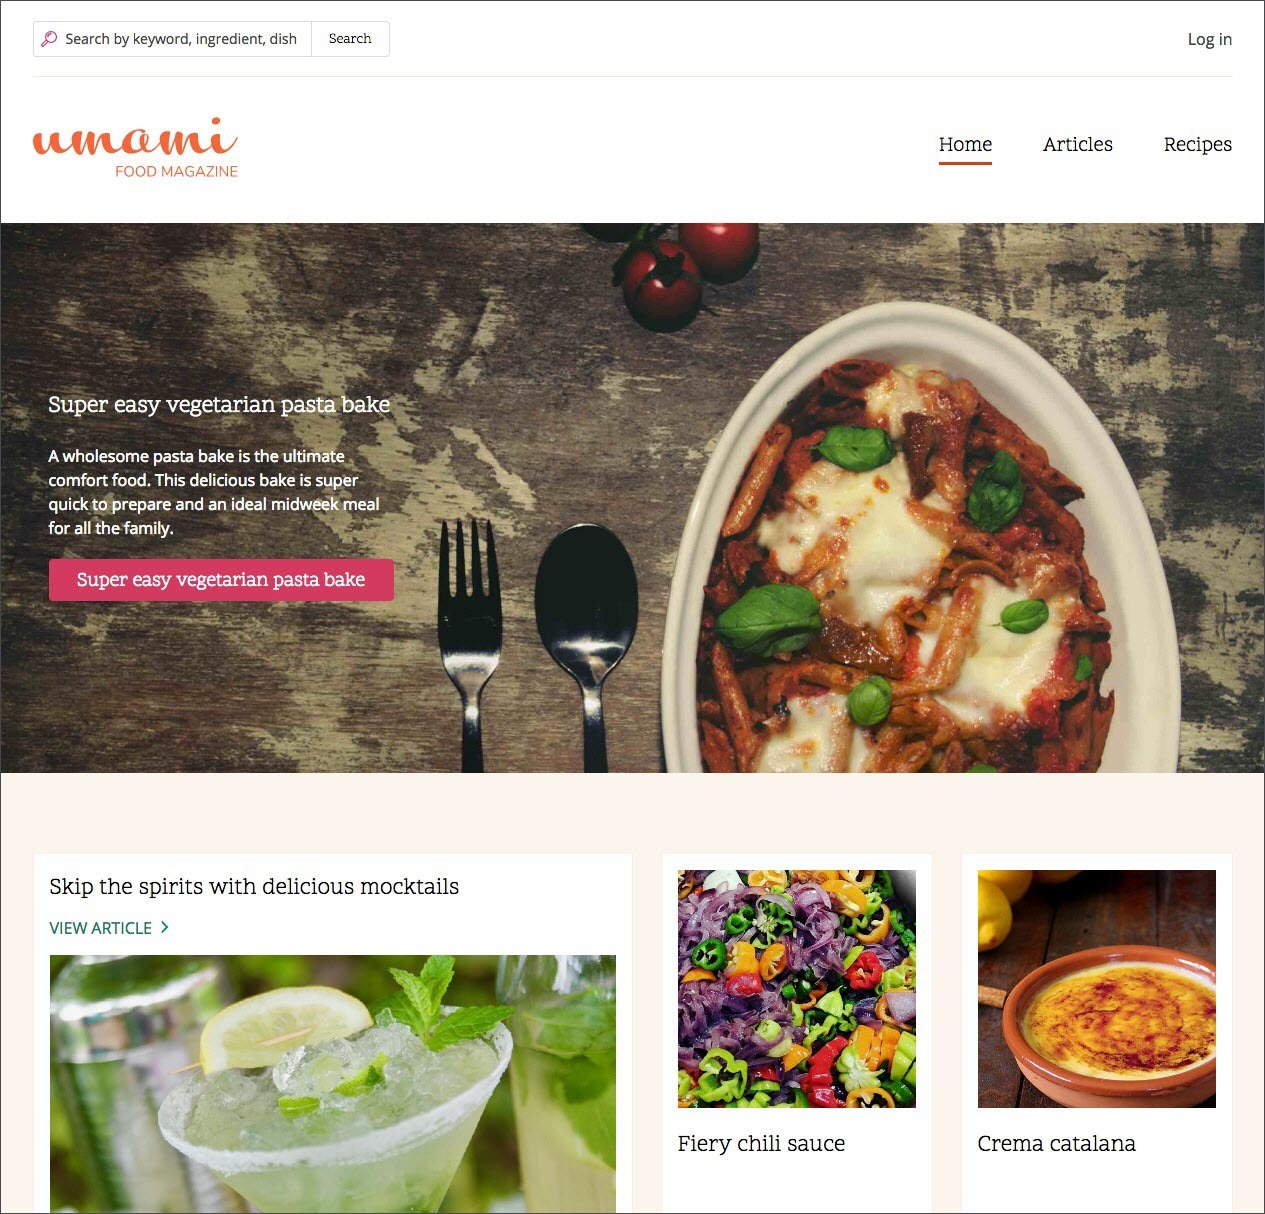 Drupal 8.6.0 Umami food magazine demo (620 pix)